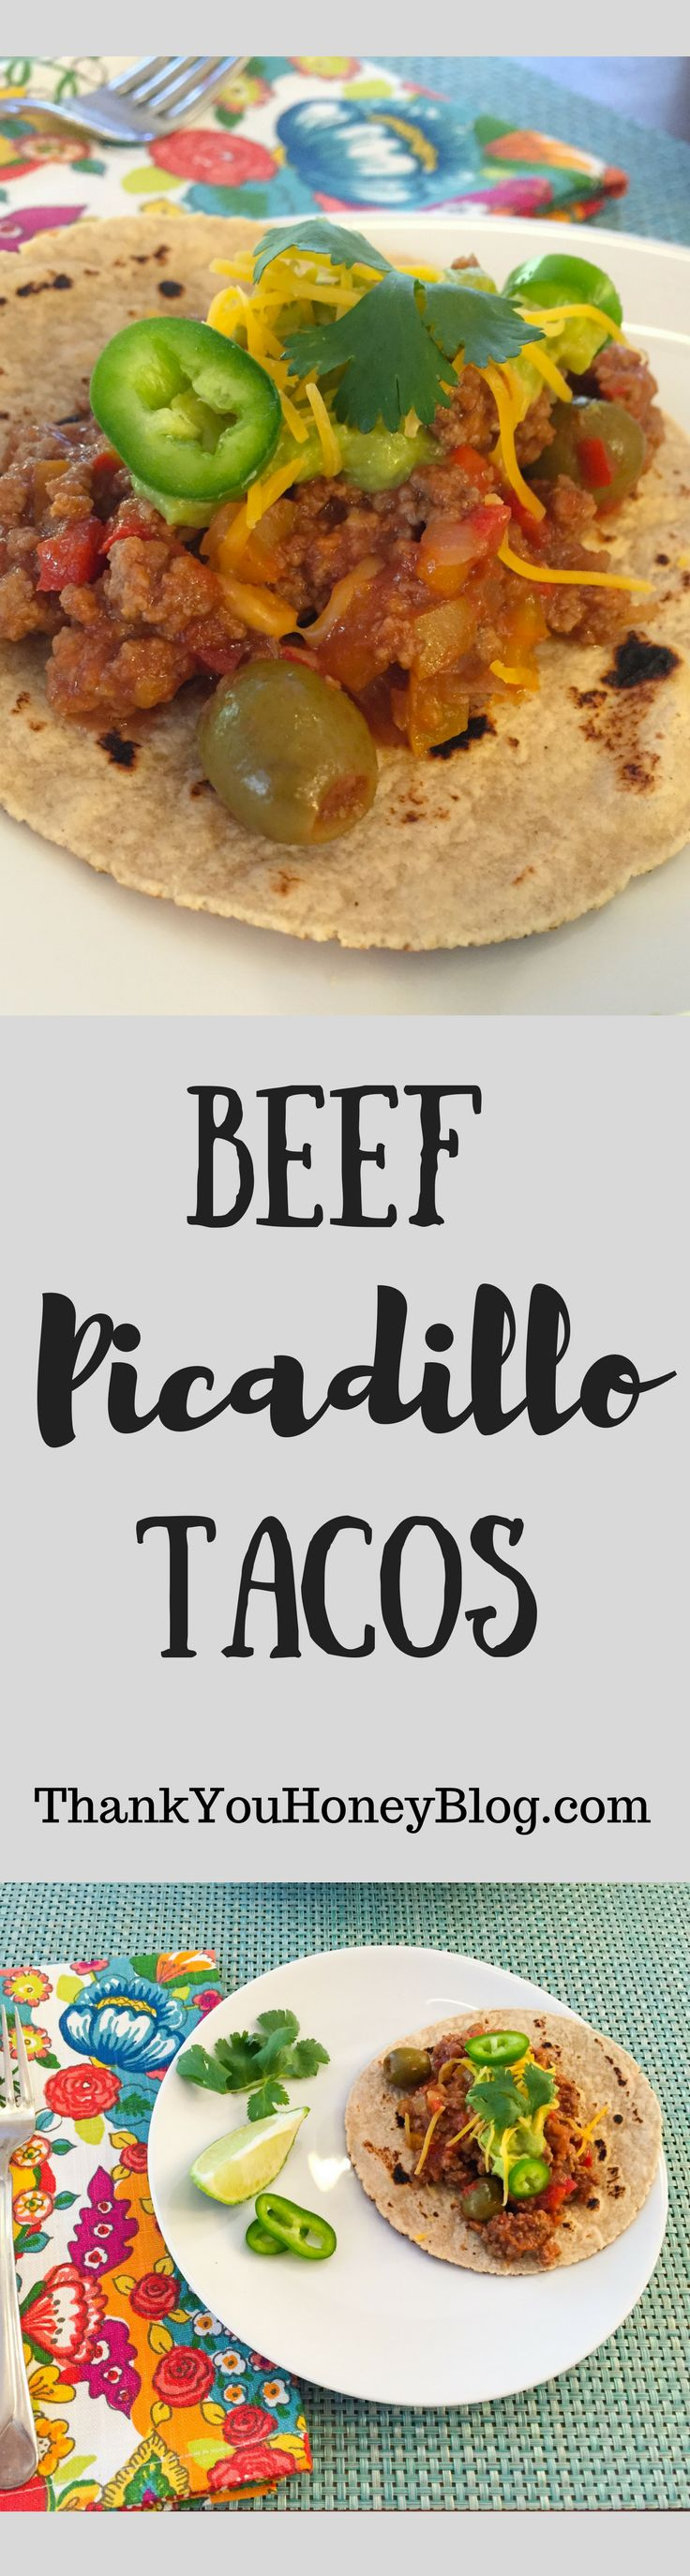 Beef Picadillo Tacos for Taco Tuesday dinner! Click through & PIN IT! Follow Us on Pinterest + Subscribe to ThankYouHoneyBlog(dot)com, Beef Picadillo, Recipe, Cuban- Inspired, Tortillas, Beef Picadillo Tacos, Supper, Main Dish, Tacos, Easy Recipe, Simple Recipe, Taco Tuesday, Tutorial,